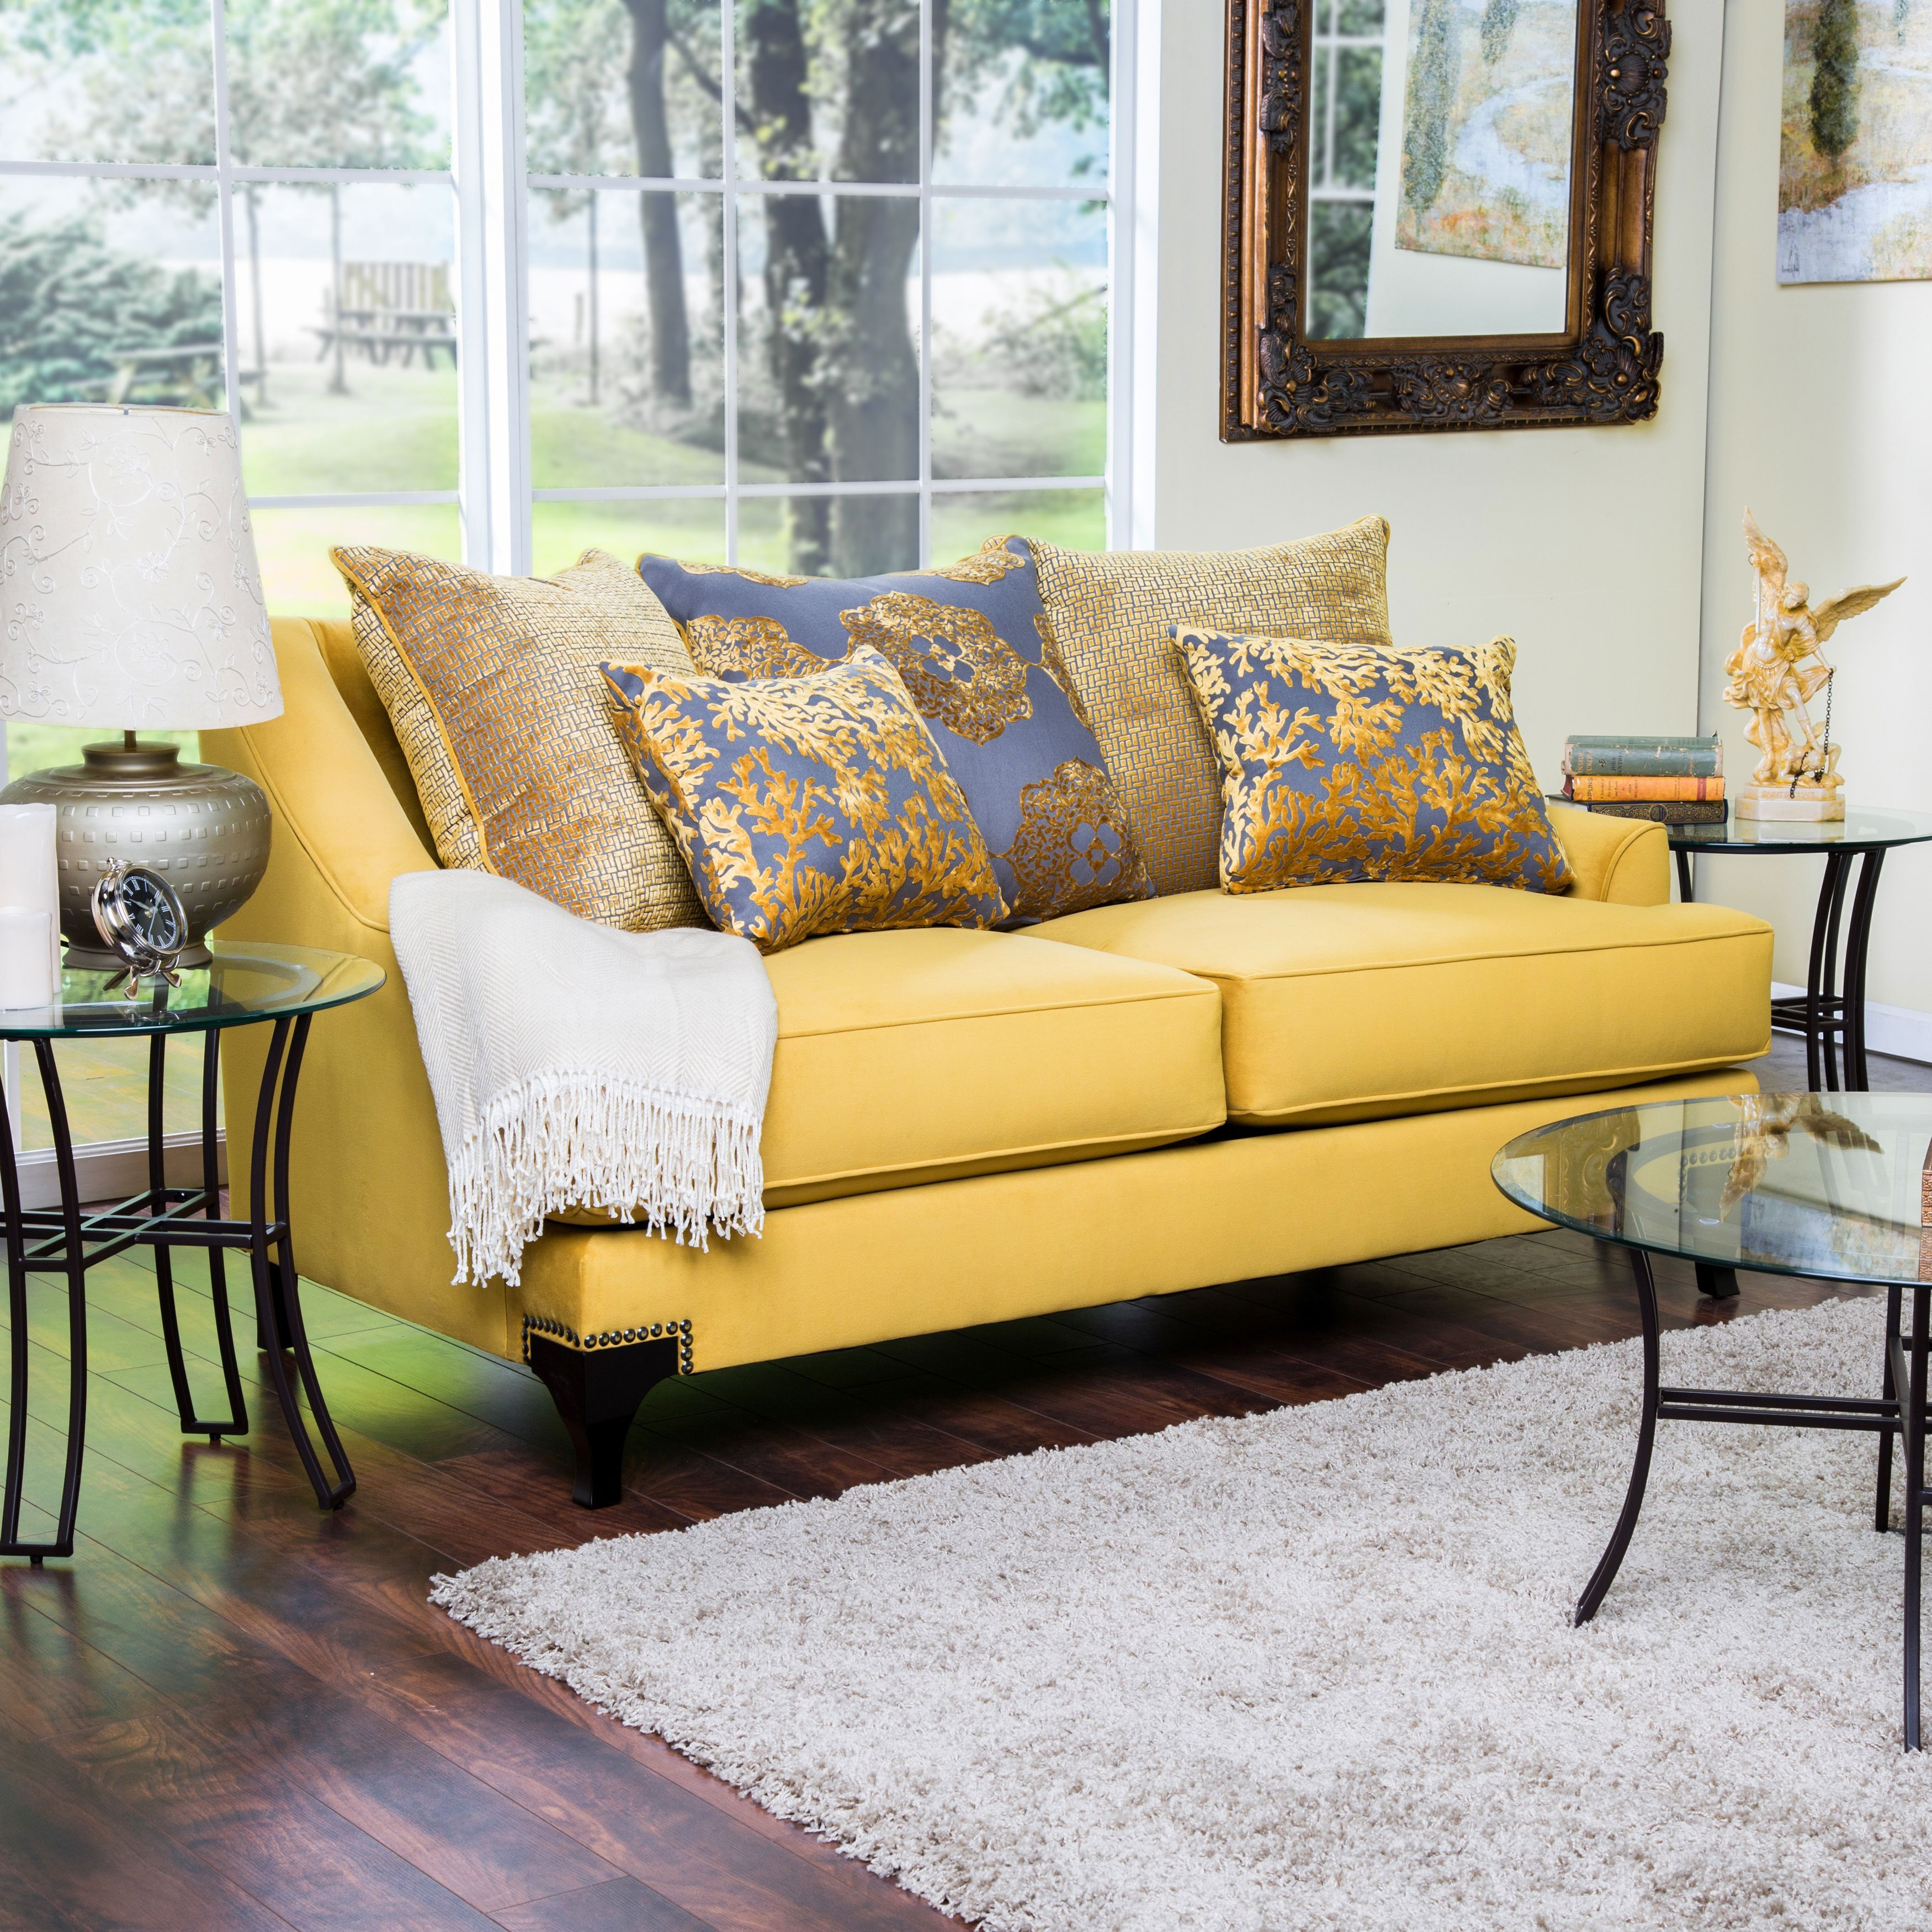 Astonishing Furniture Of America Visconti Premium Fabric Loveseat Gold Bralicious Painted Fabric Chair Ideas Braliciousco